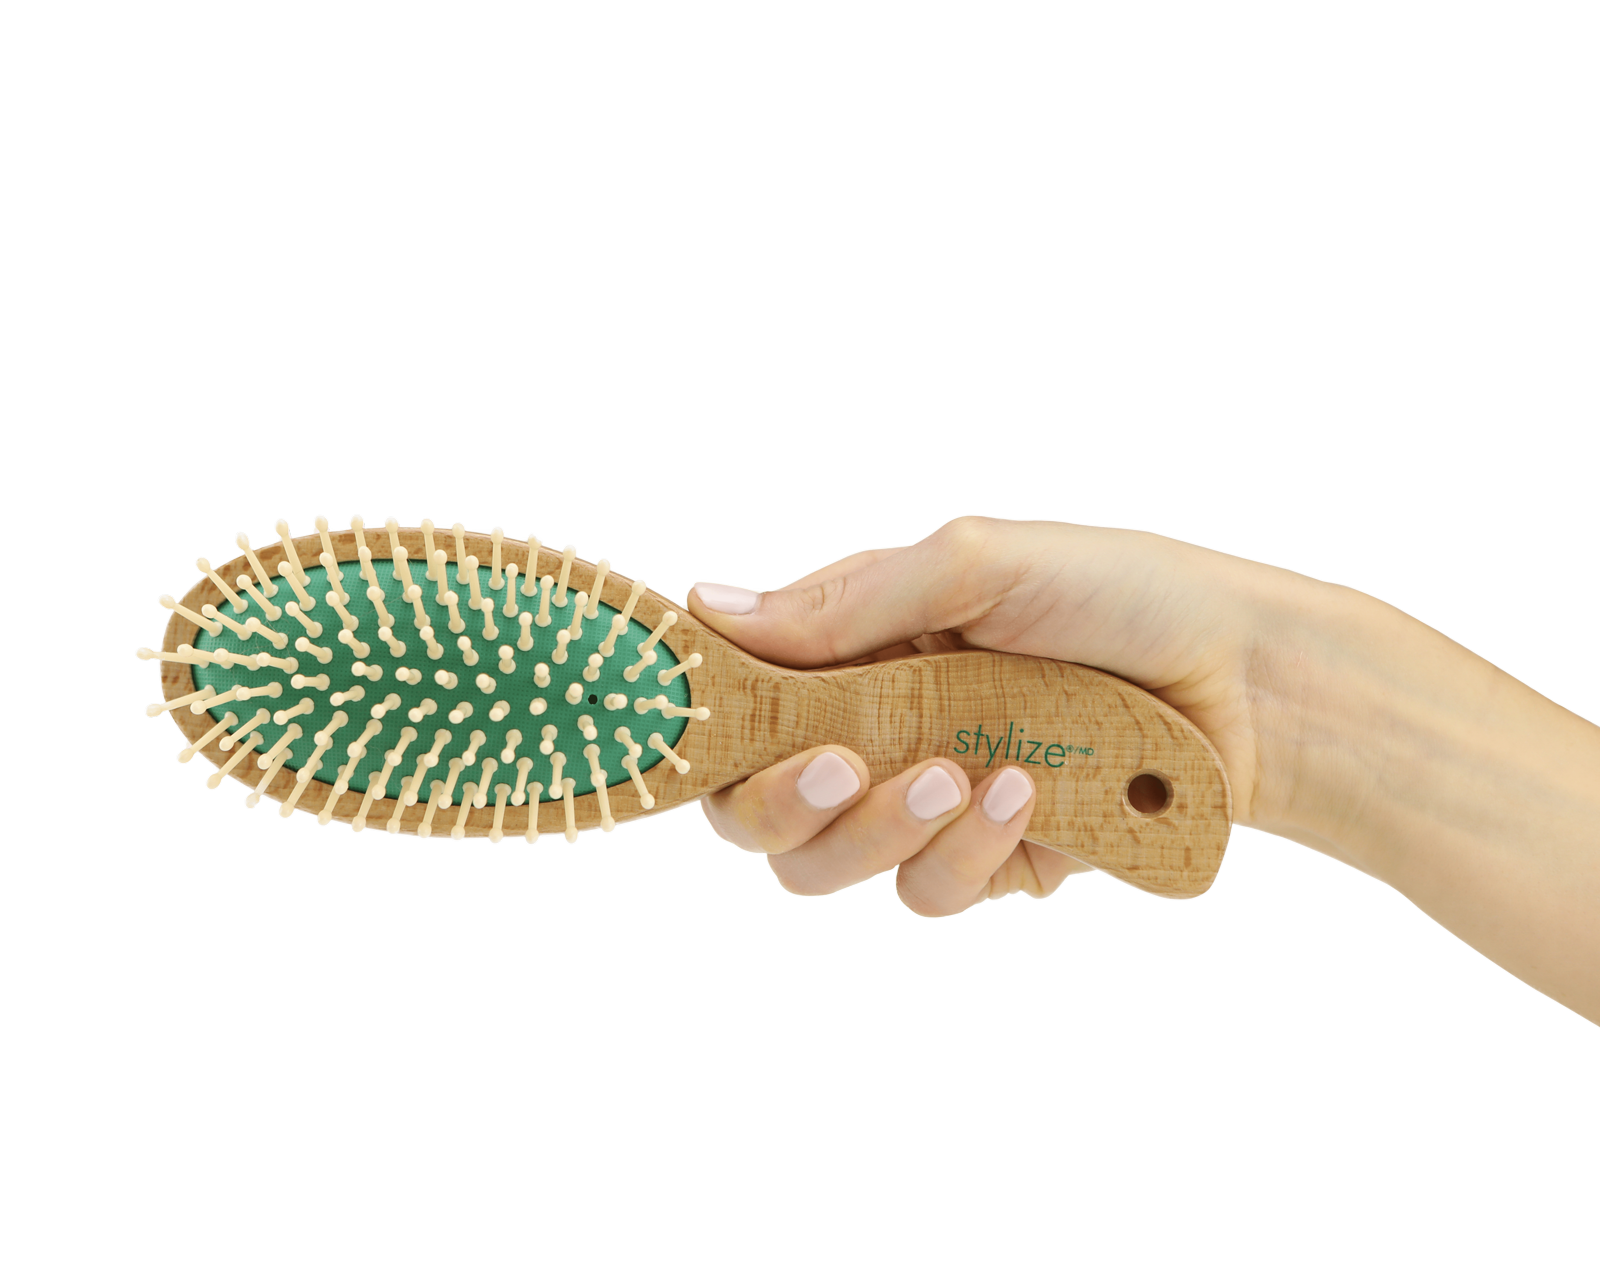 Hand model product photo on transparent background of hand holding a green hair brush